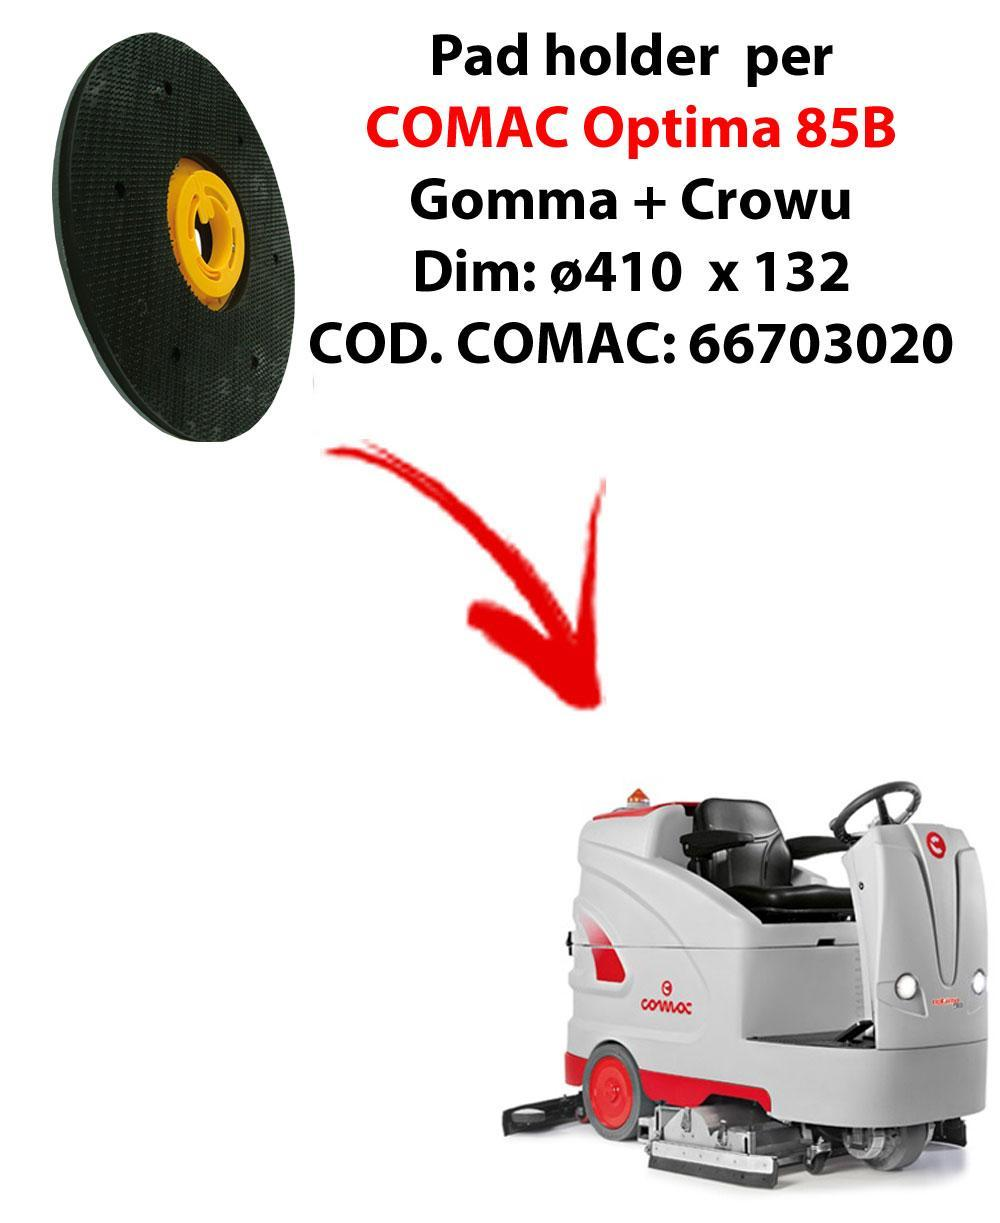 PAD HOLDER for scrubber dryer COMAC Optima 85B. Code comac: 66703020